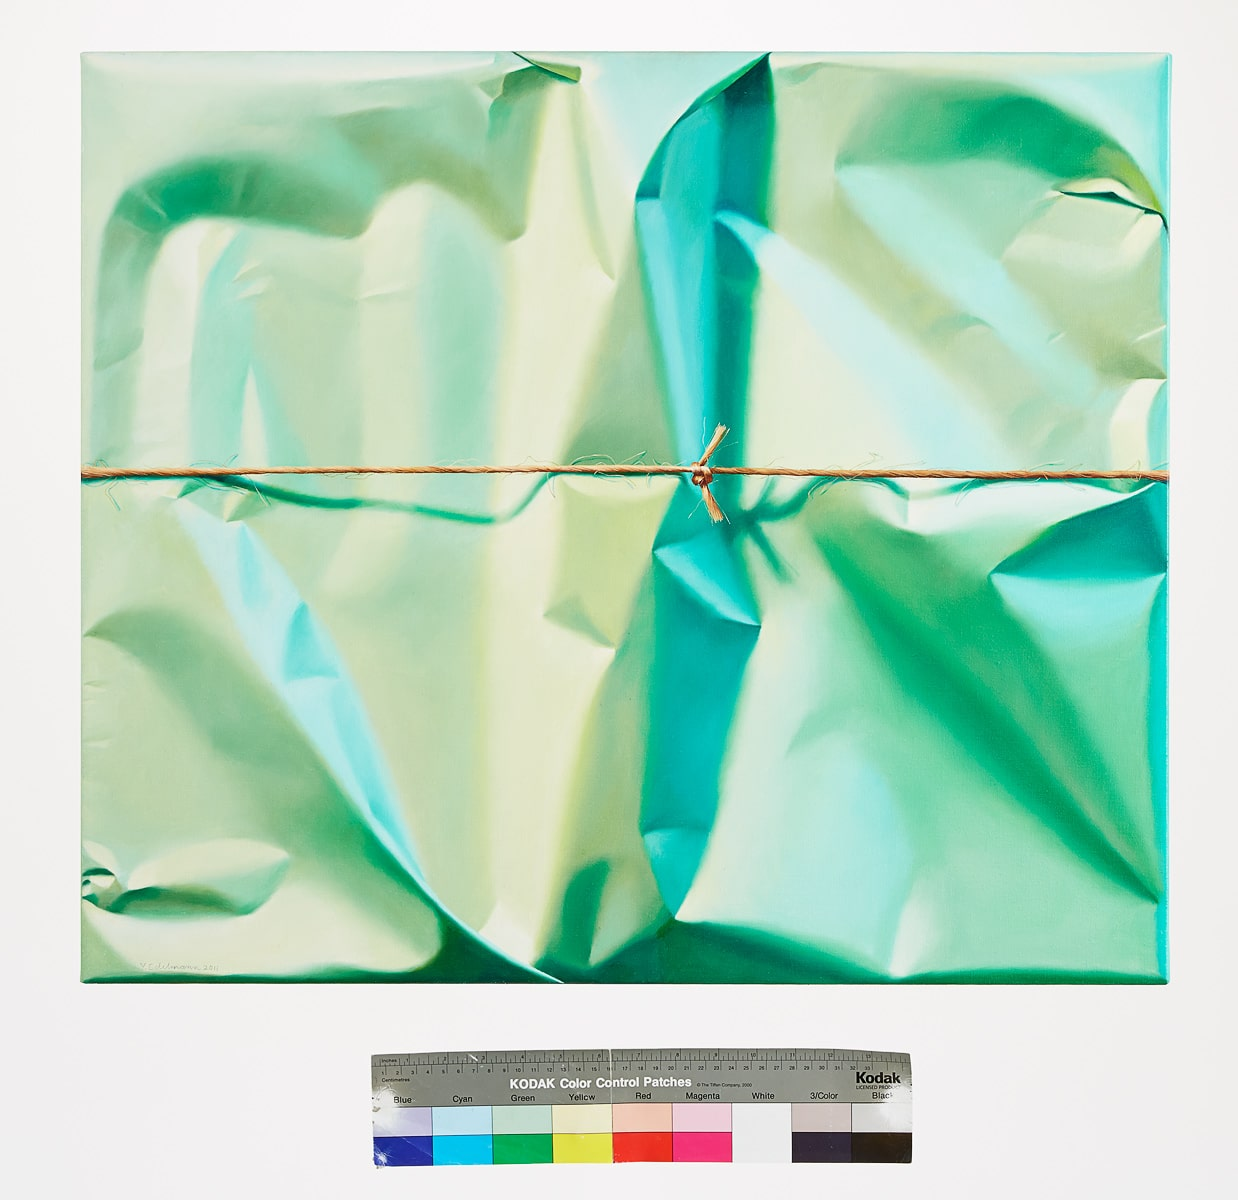 Hyperrealistic Paintings of Packages by Yrjö Edelmann